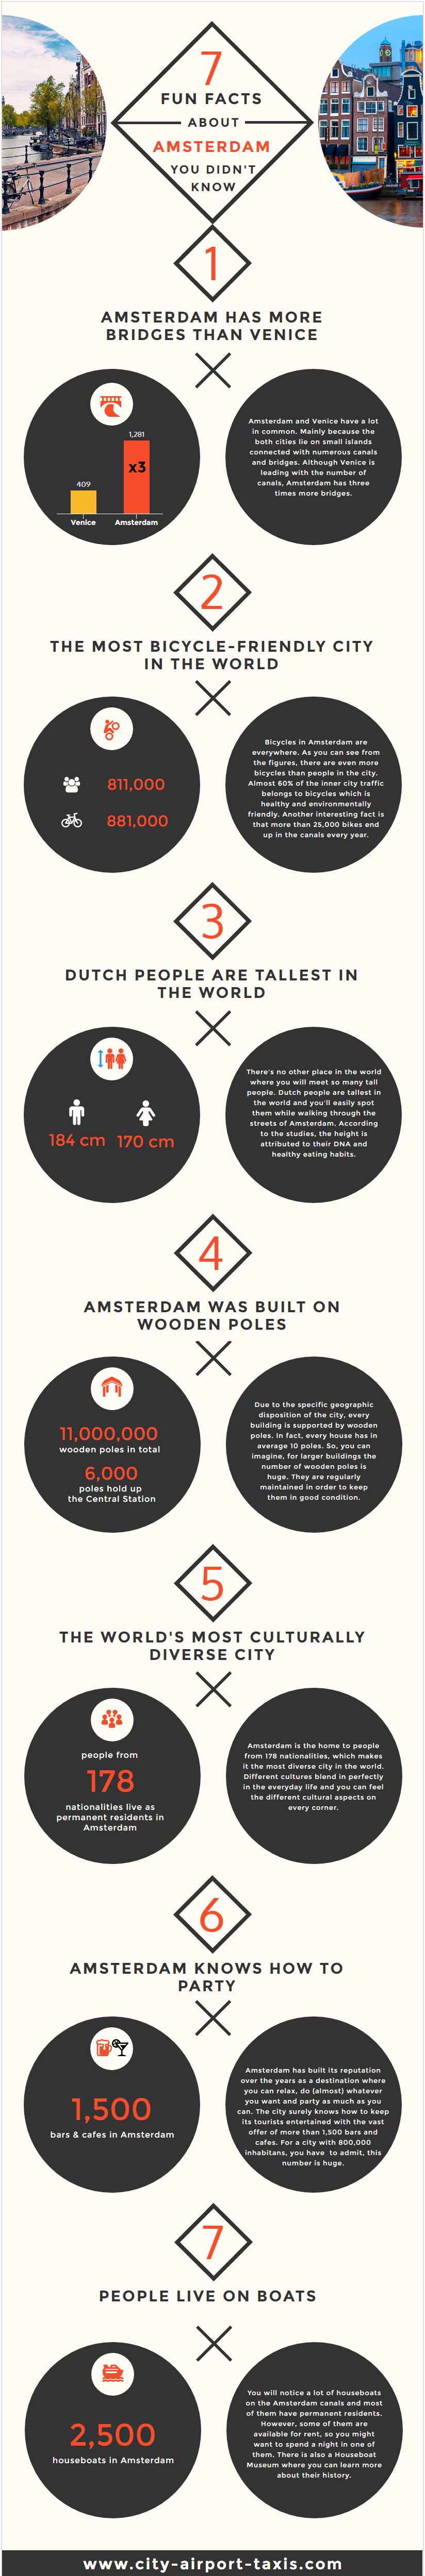 7 Fun Facts About Amsterdam You Didn't Know #Infographic